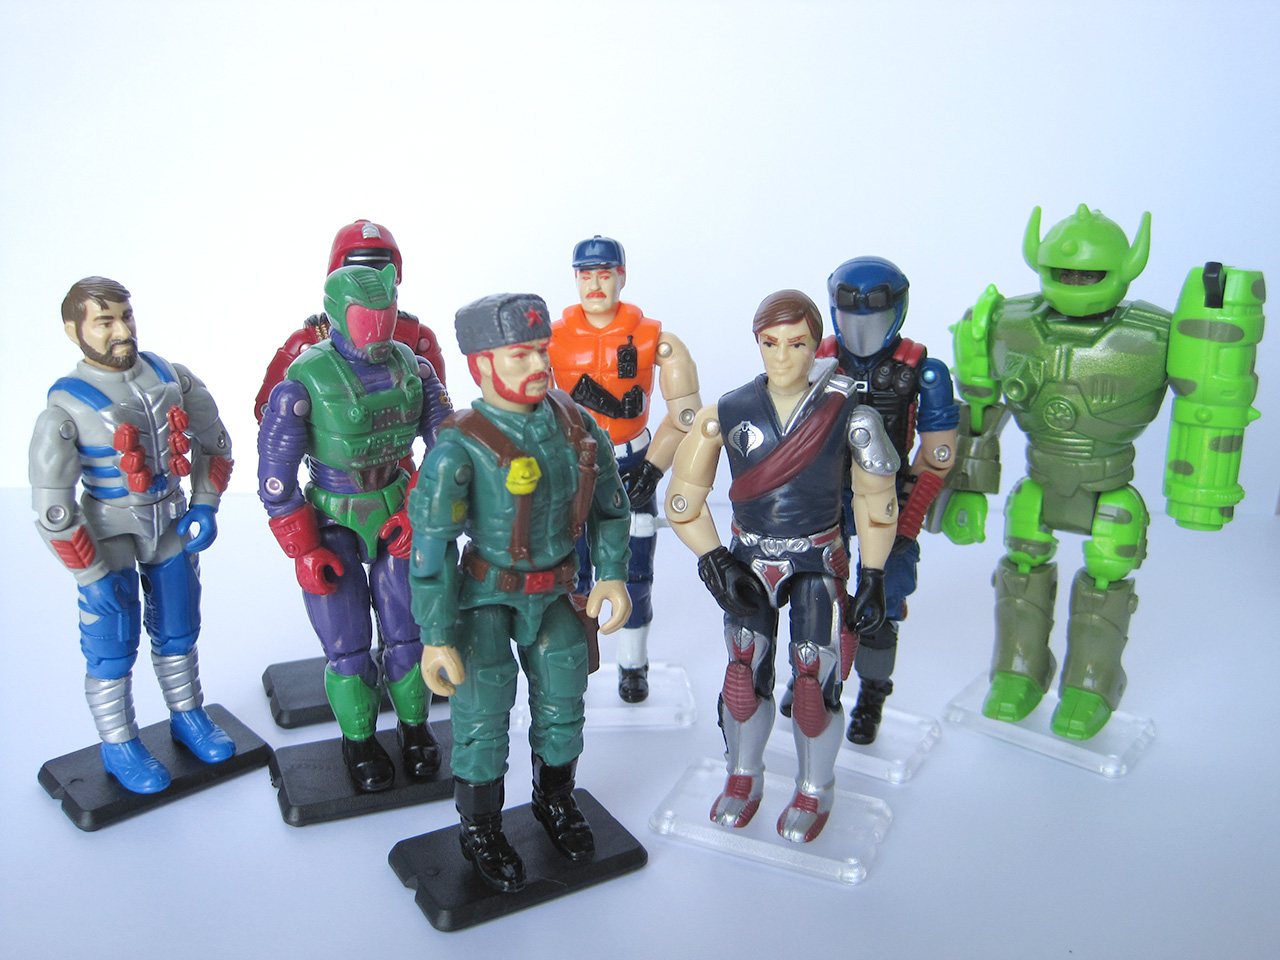 SmallJoes Vintage Action Figure Stands